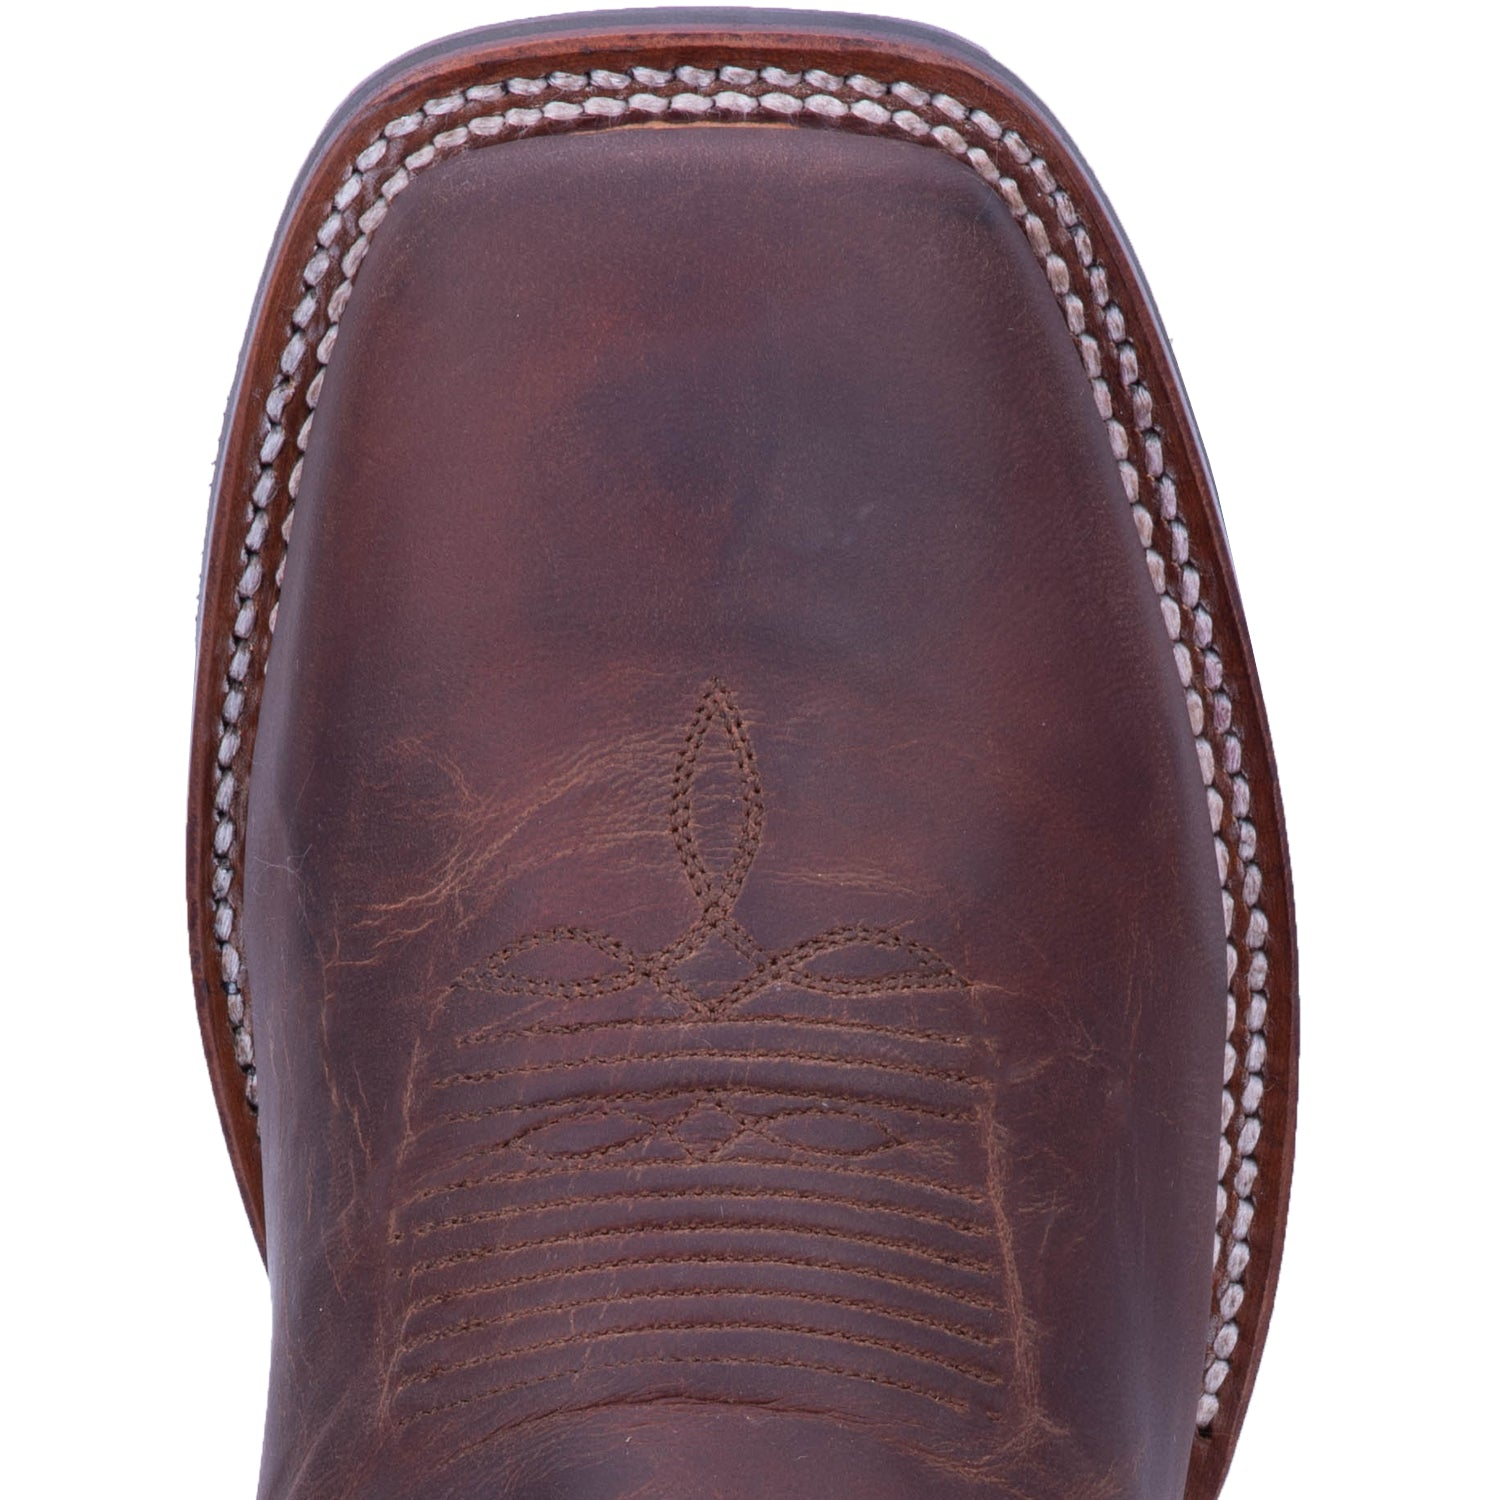 WINSLOW LEATHER BOOT 13289286074410